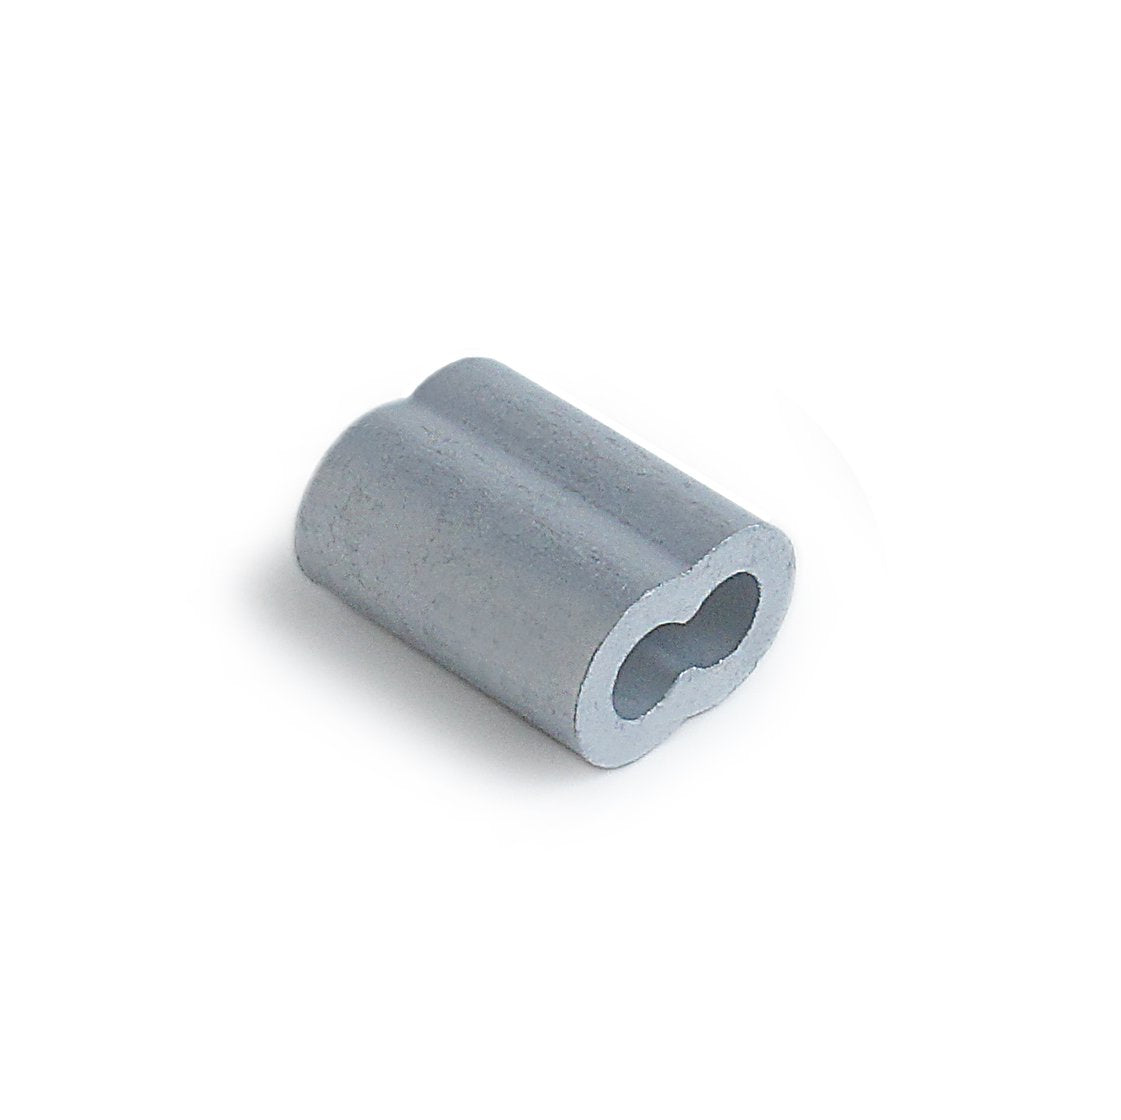 AS-4.0 (4mm Alloy swage for wire rope)